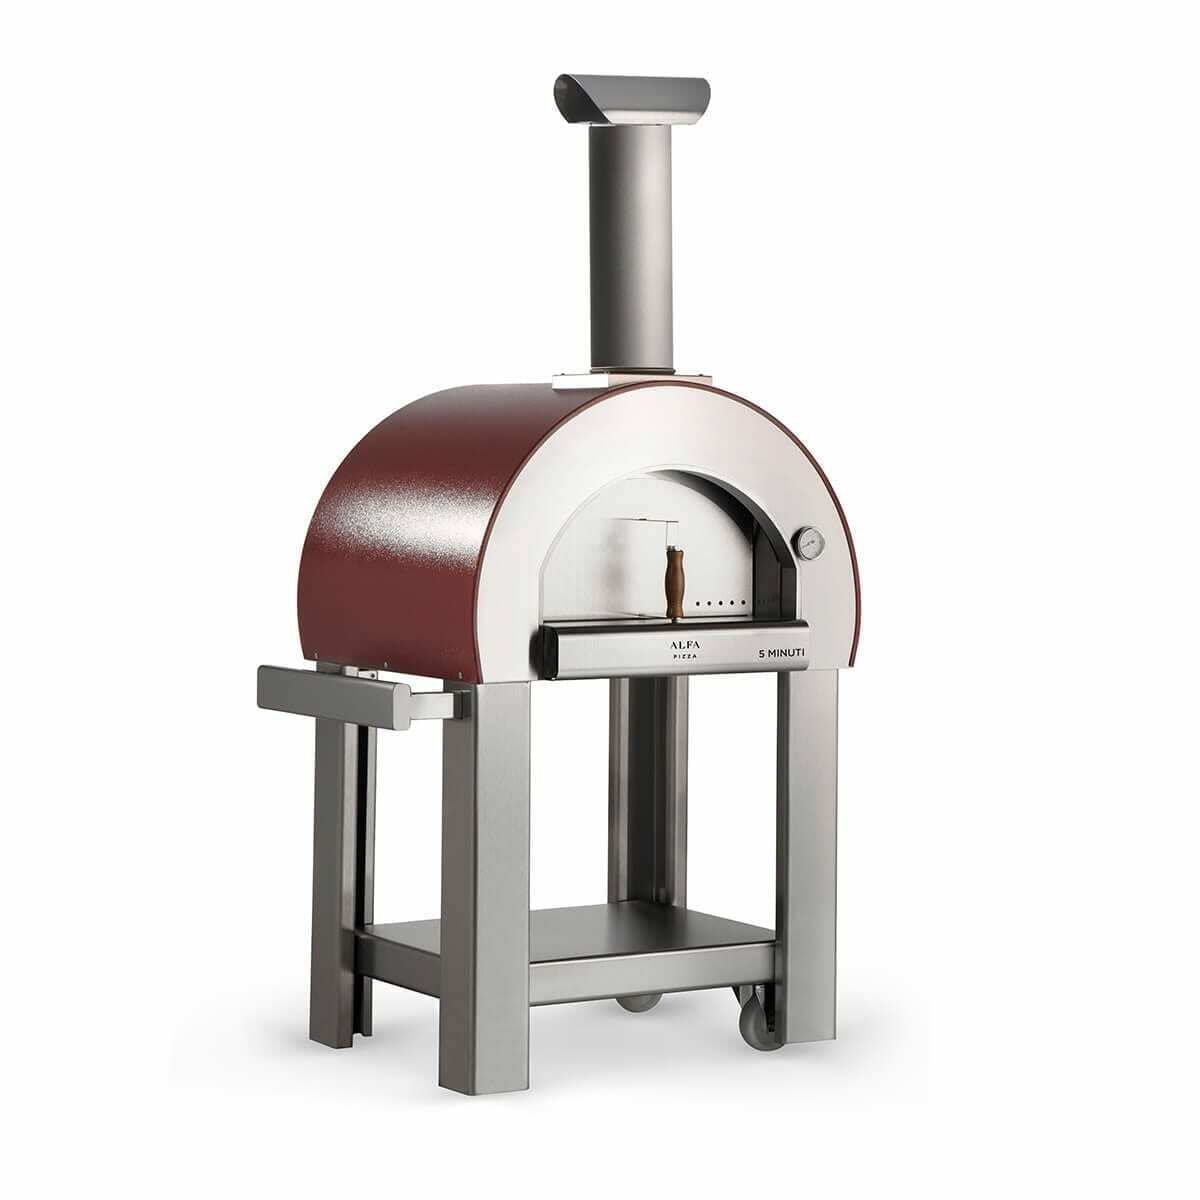 Chicago Outdoor Living's Alfa 5 Minuti Wood Fired Pizza Oven